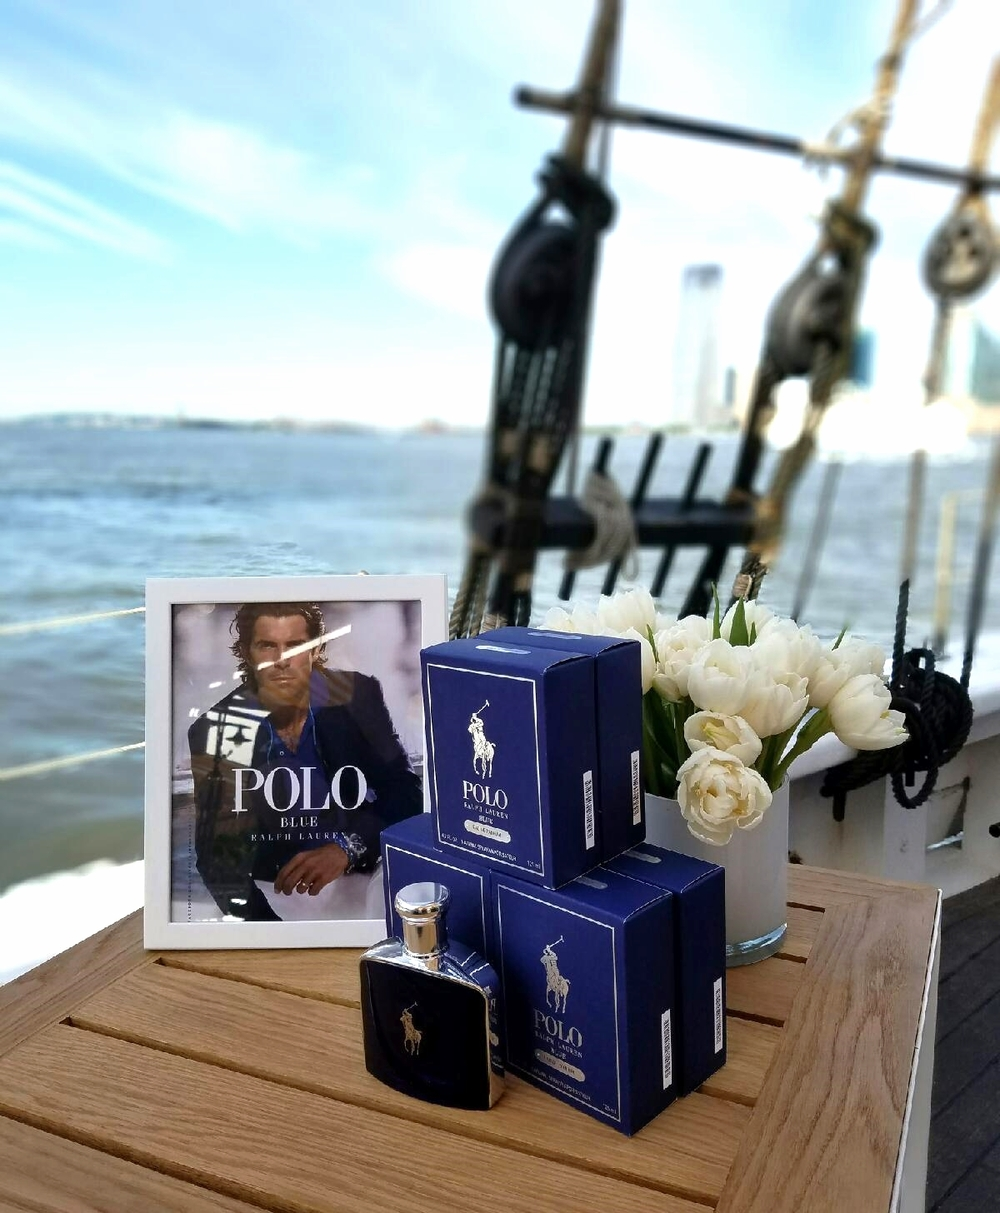 Polo Blue EDP Launch